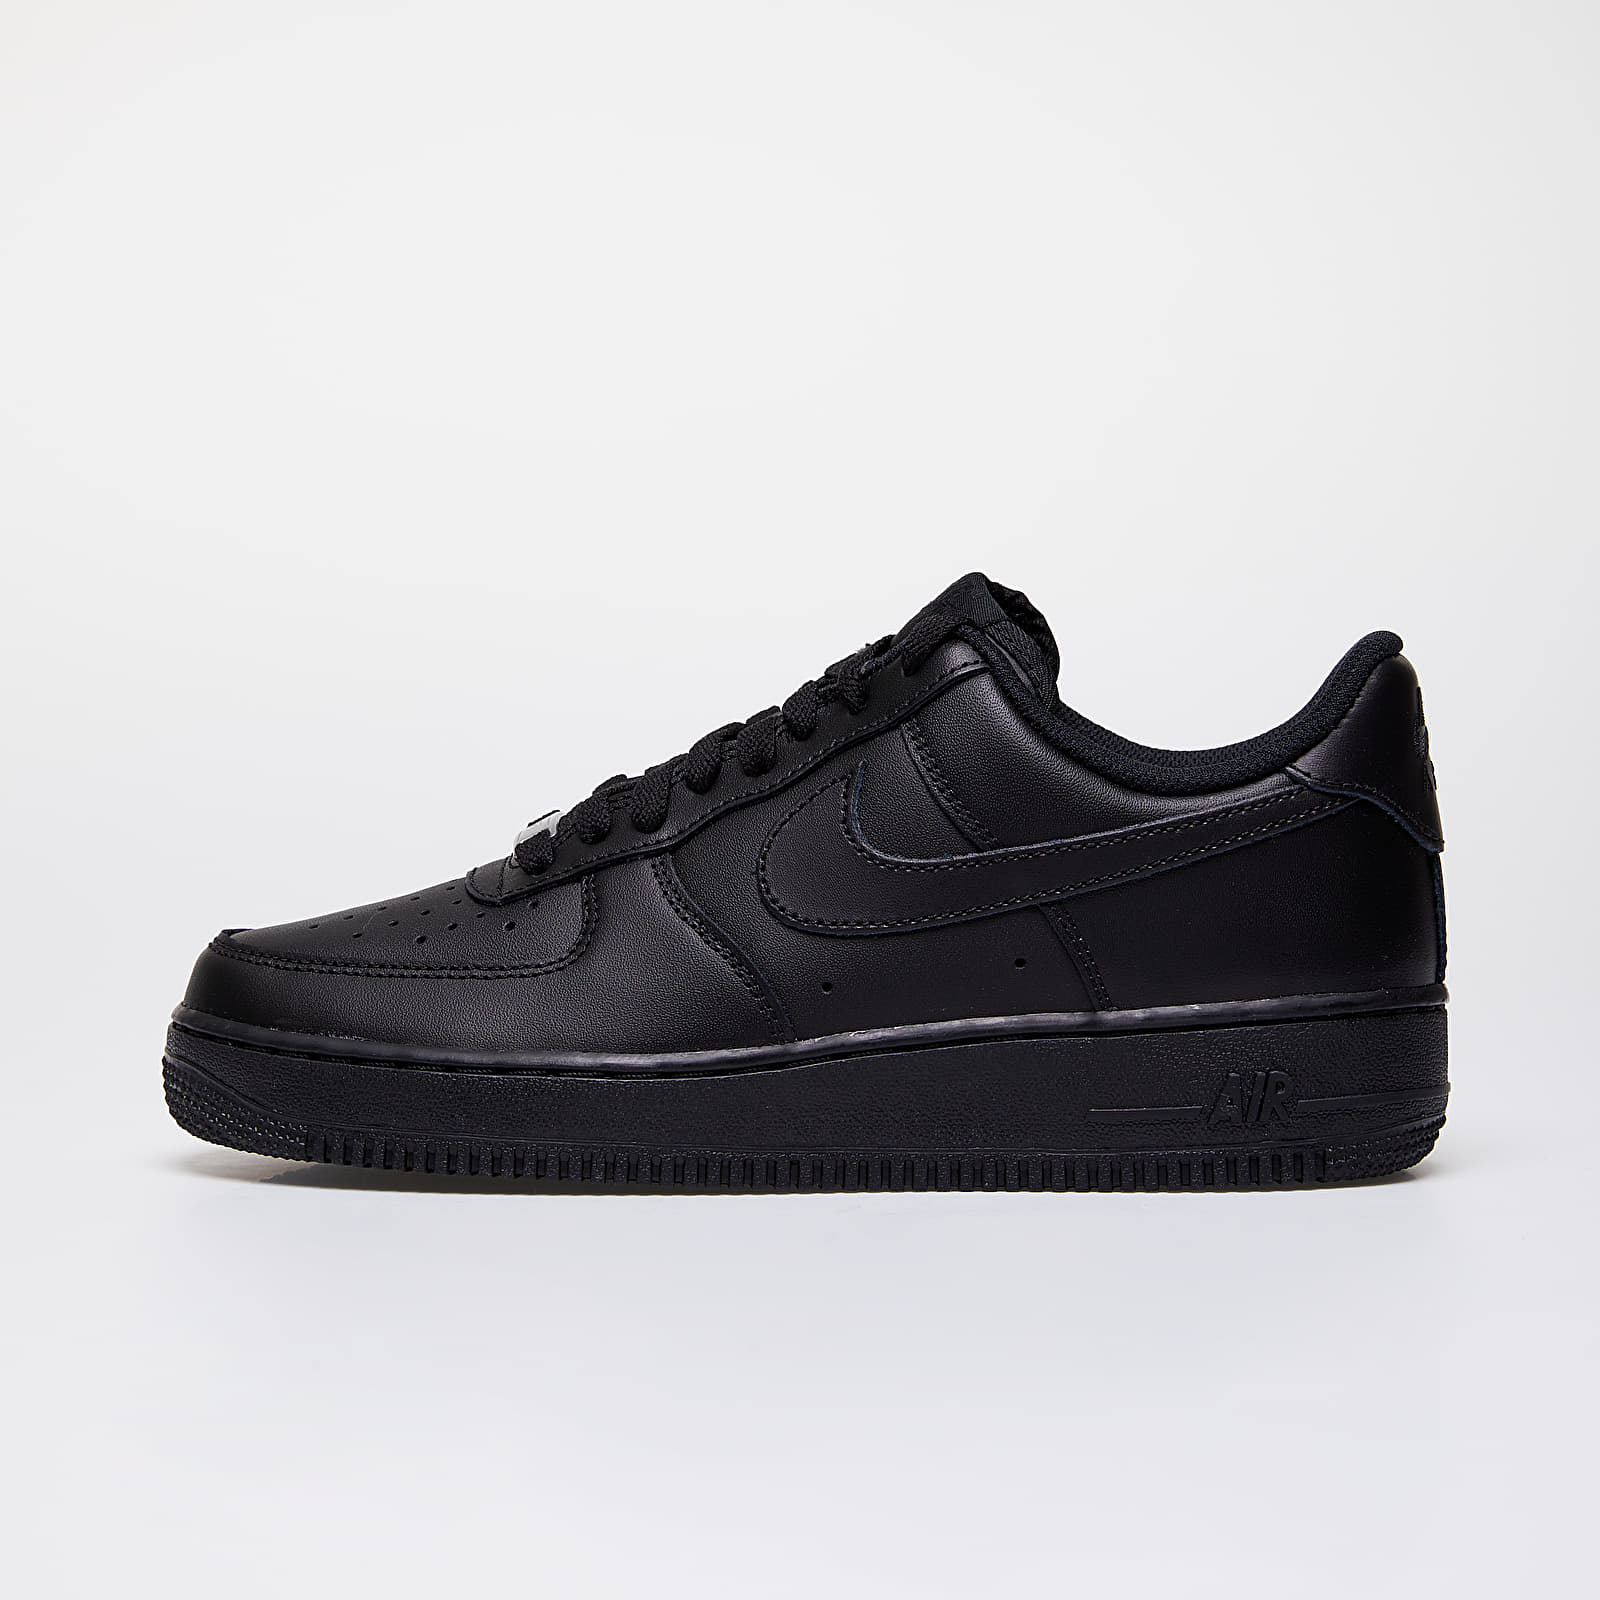 Men's shoes Nike Air Force 1 '07 Black/ Black